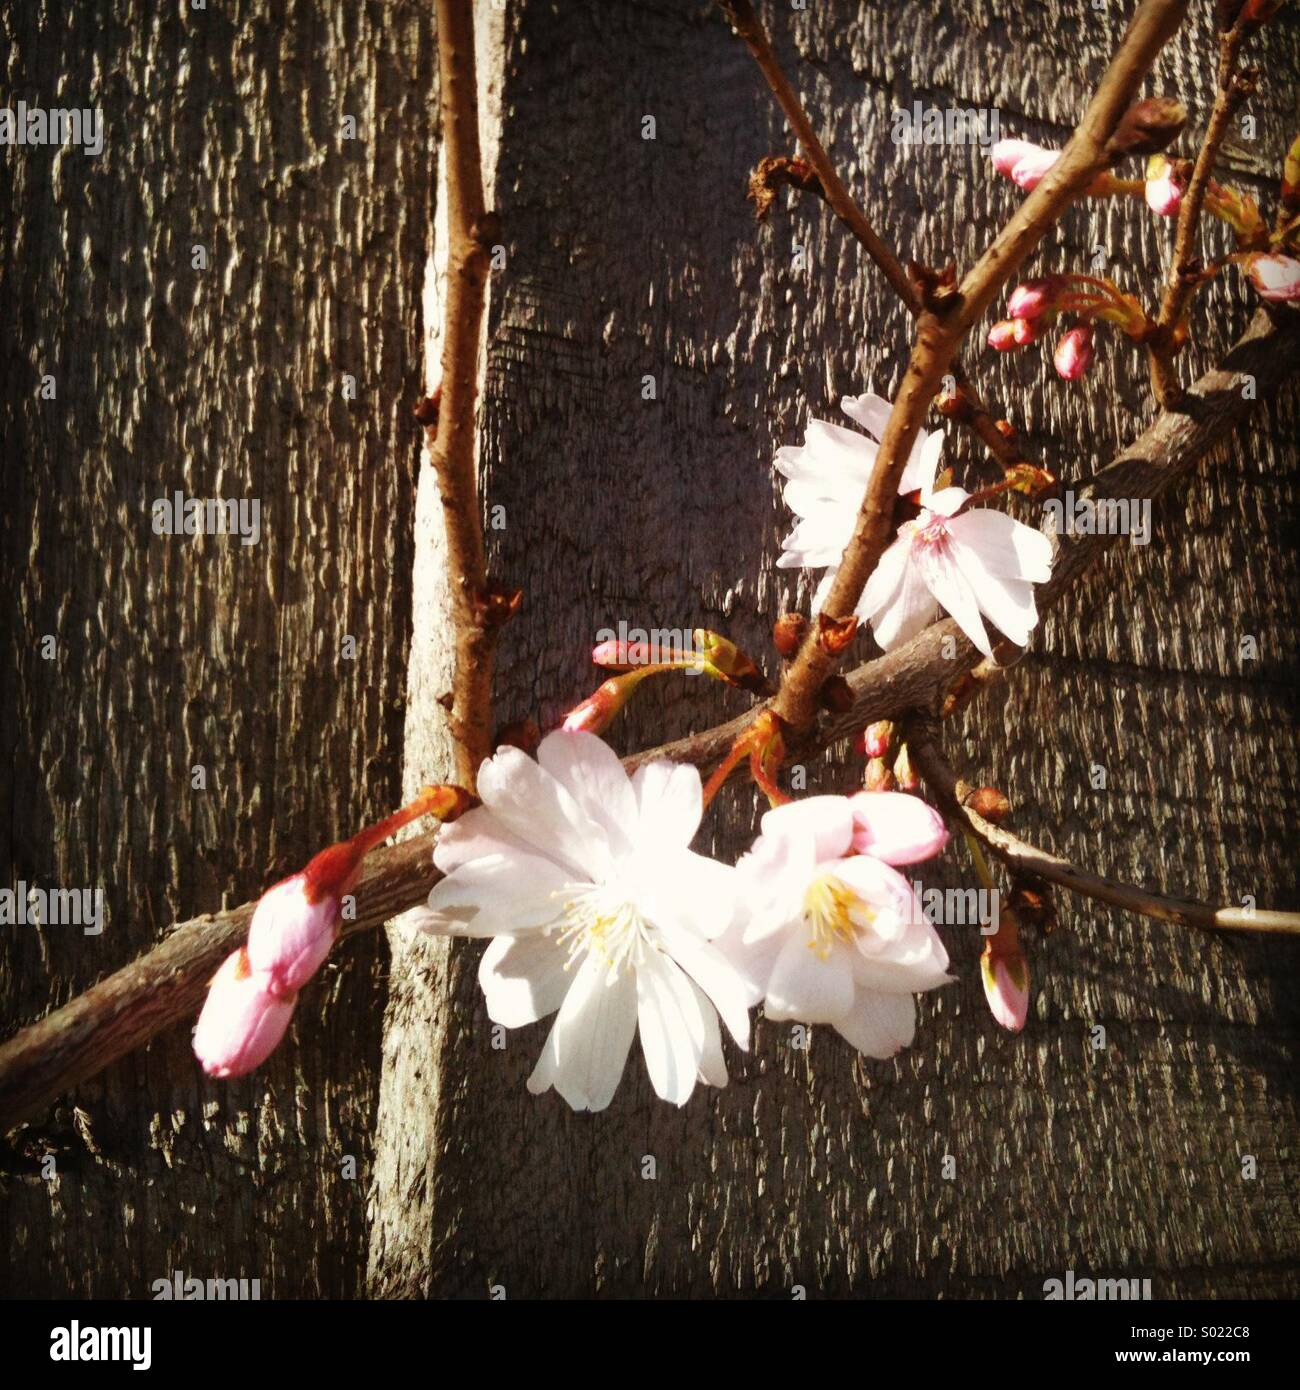 Cherry Blossoms Against Wooden Fence - Stock Image